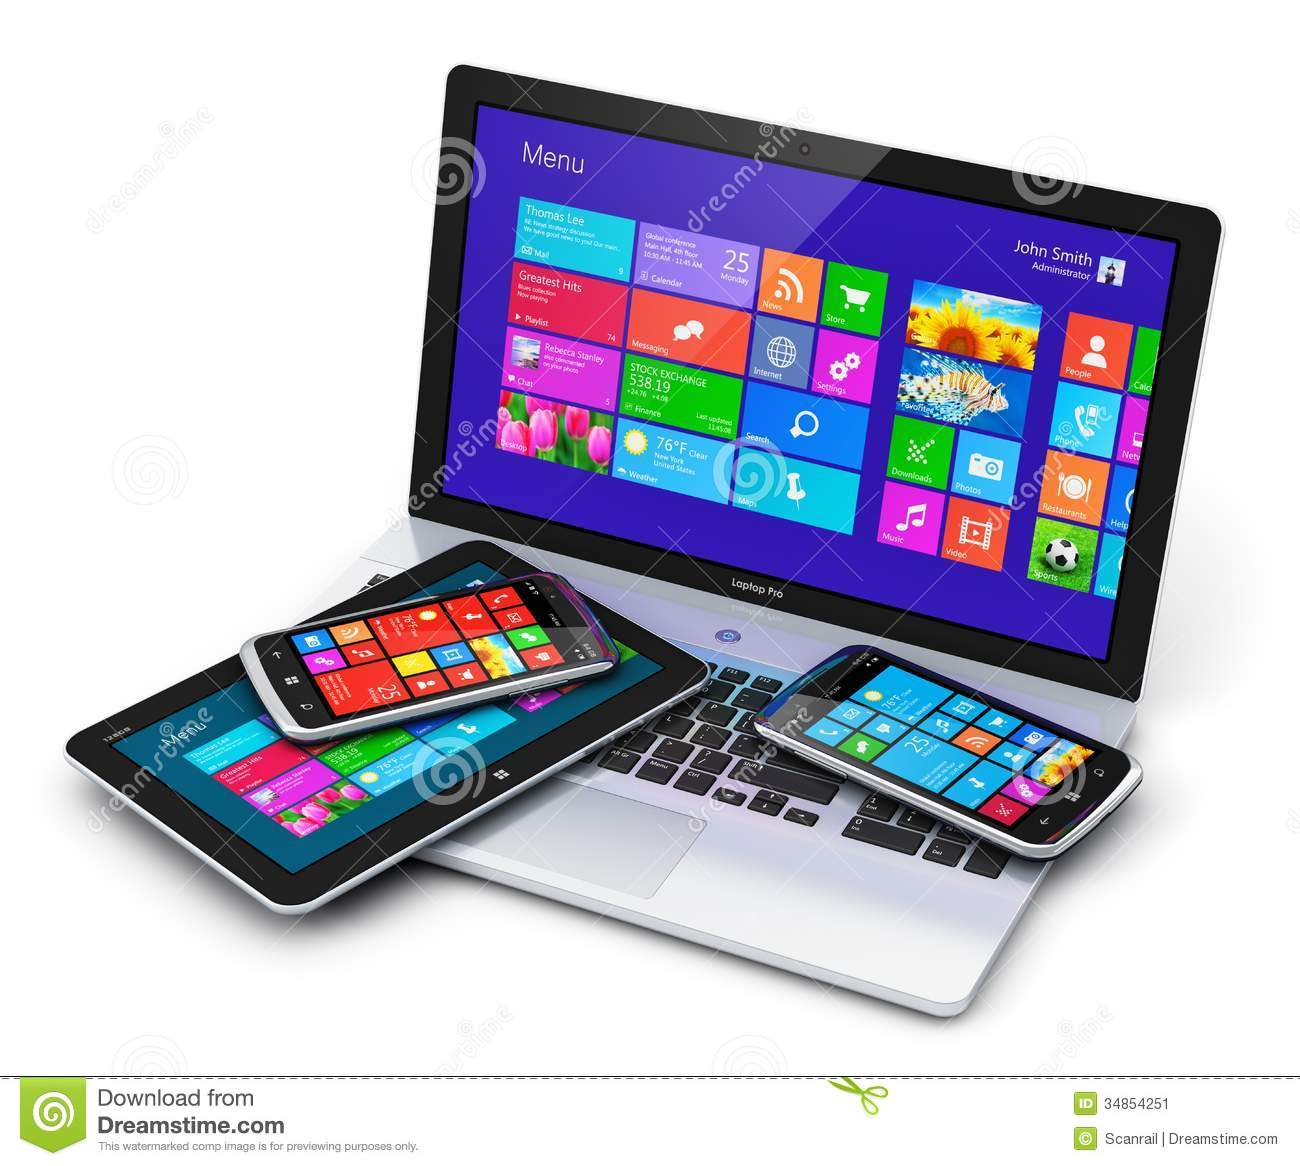 how to connect mobile device to laptop